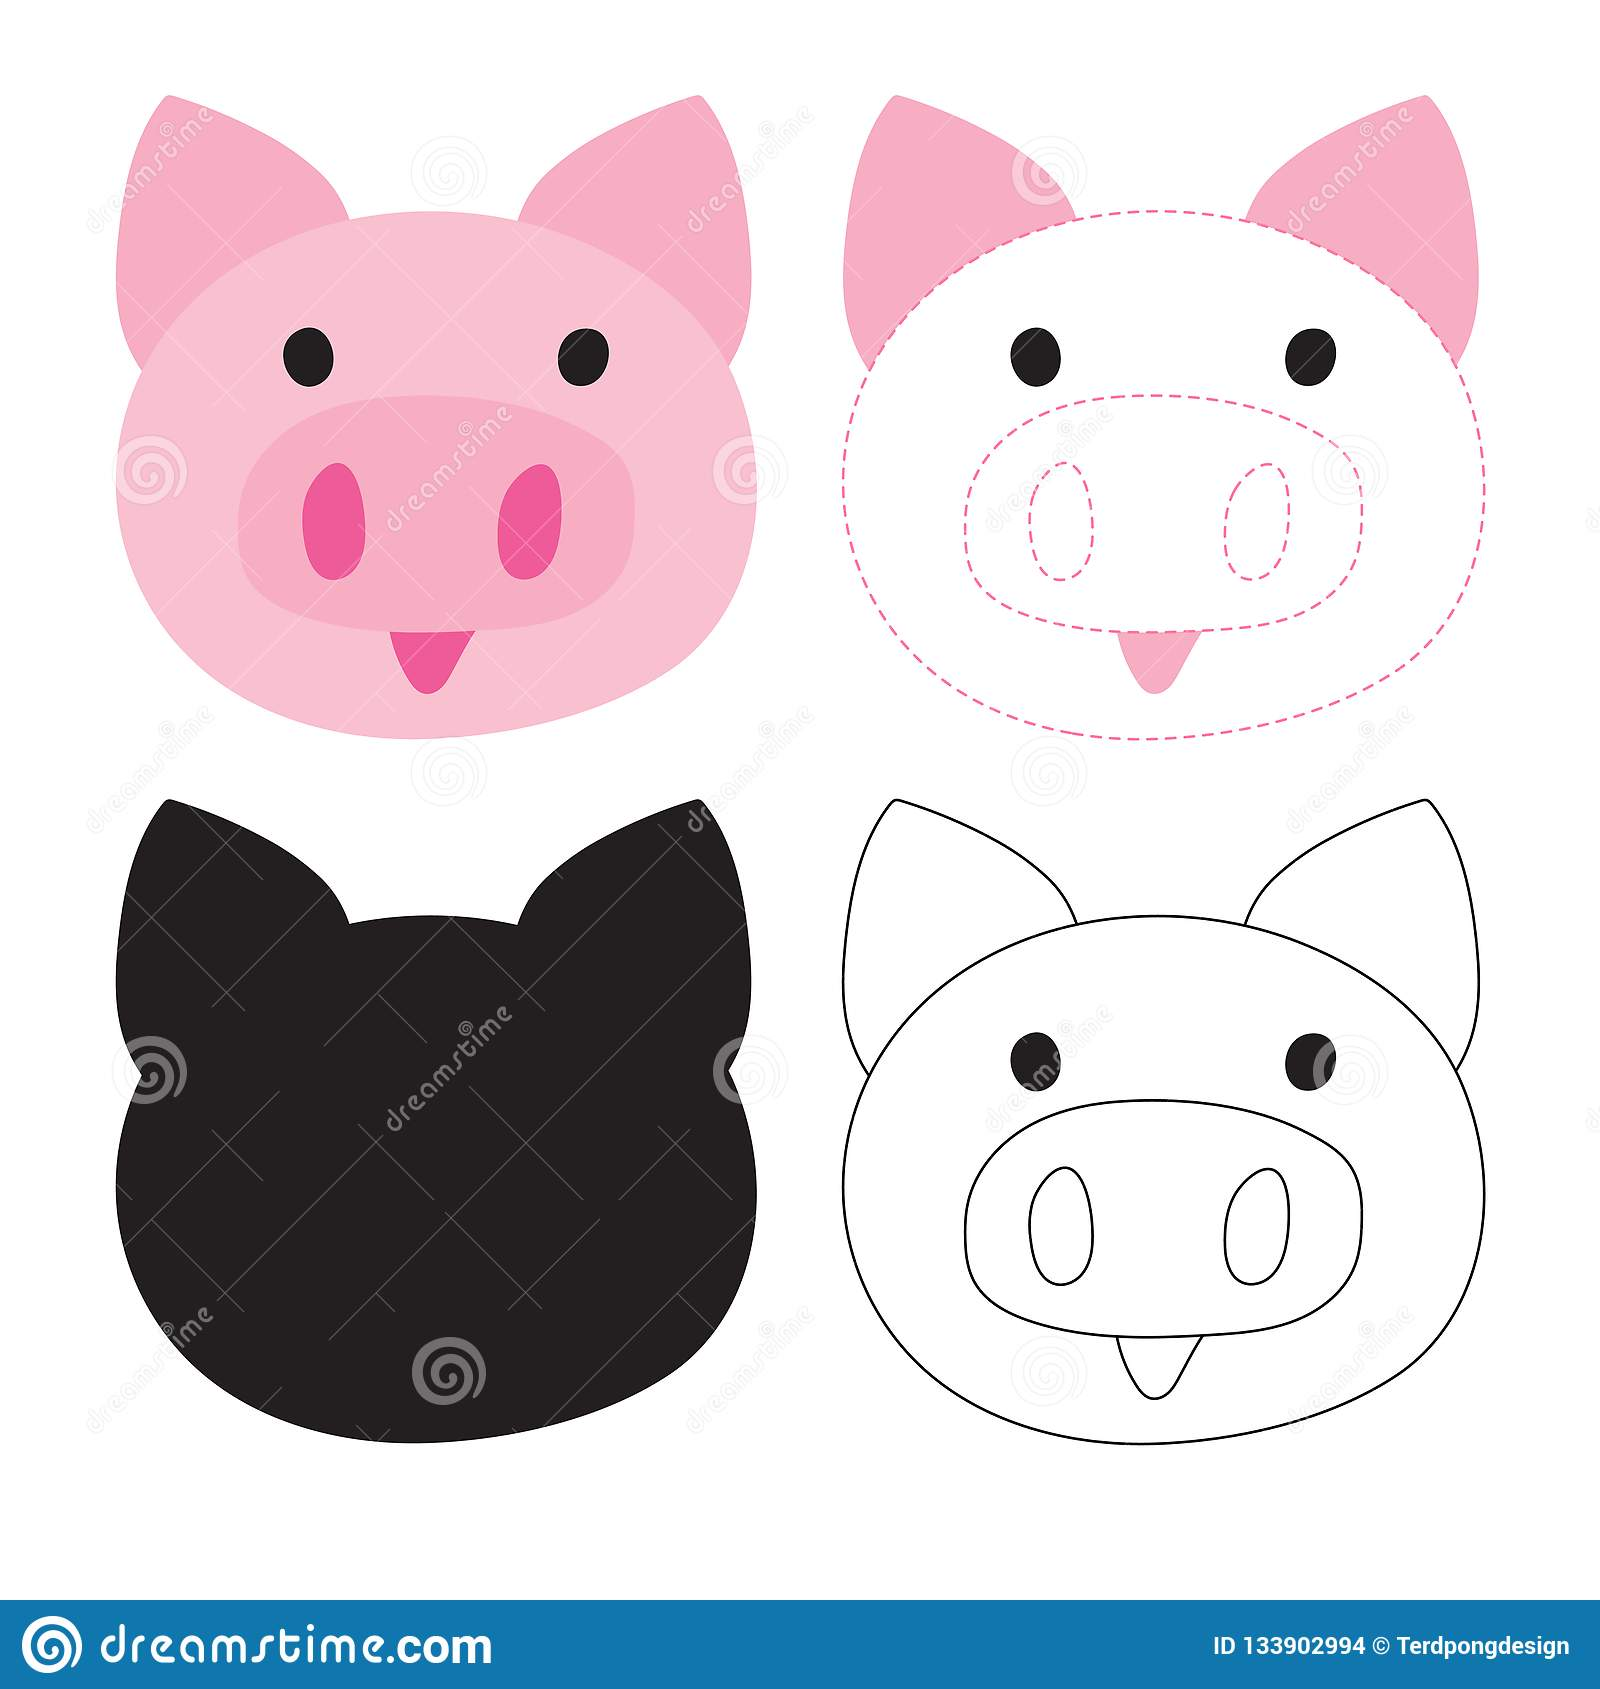 Pig Worksheet Vector Design Stock Vector